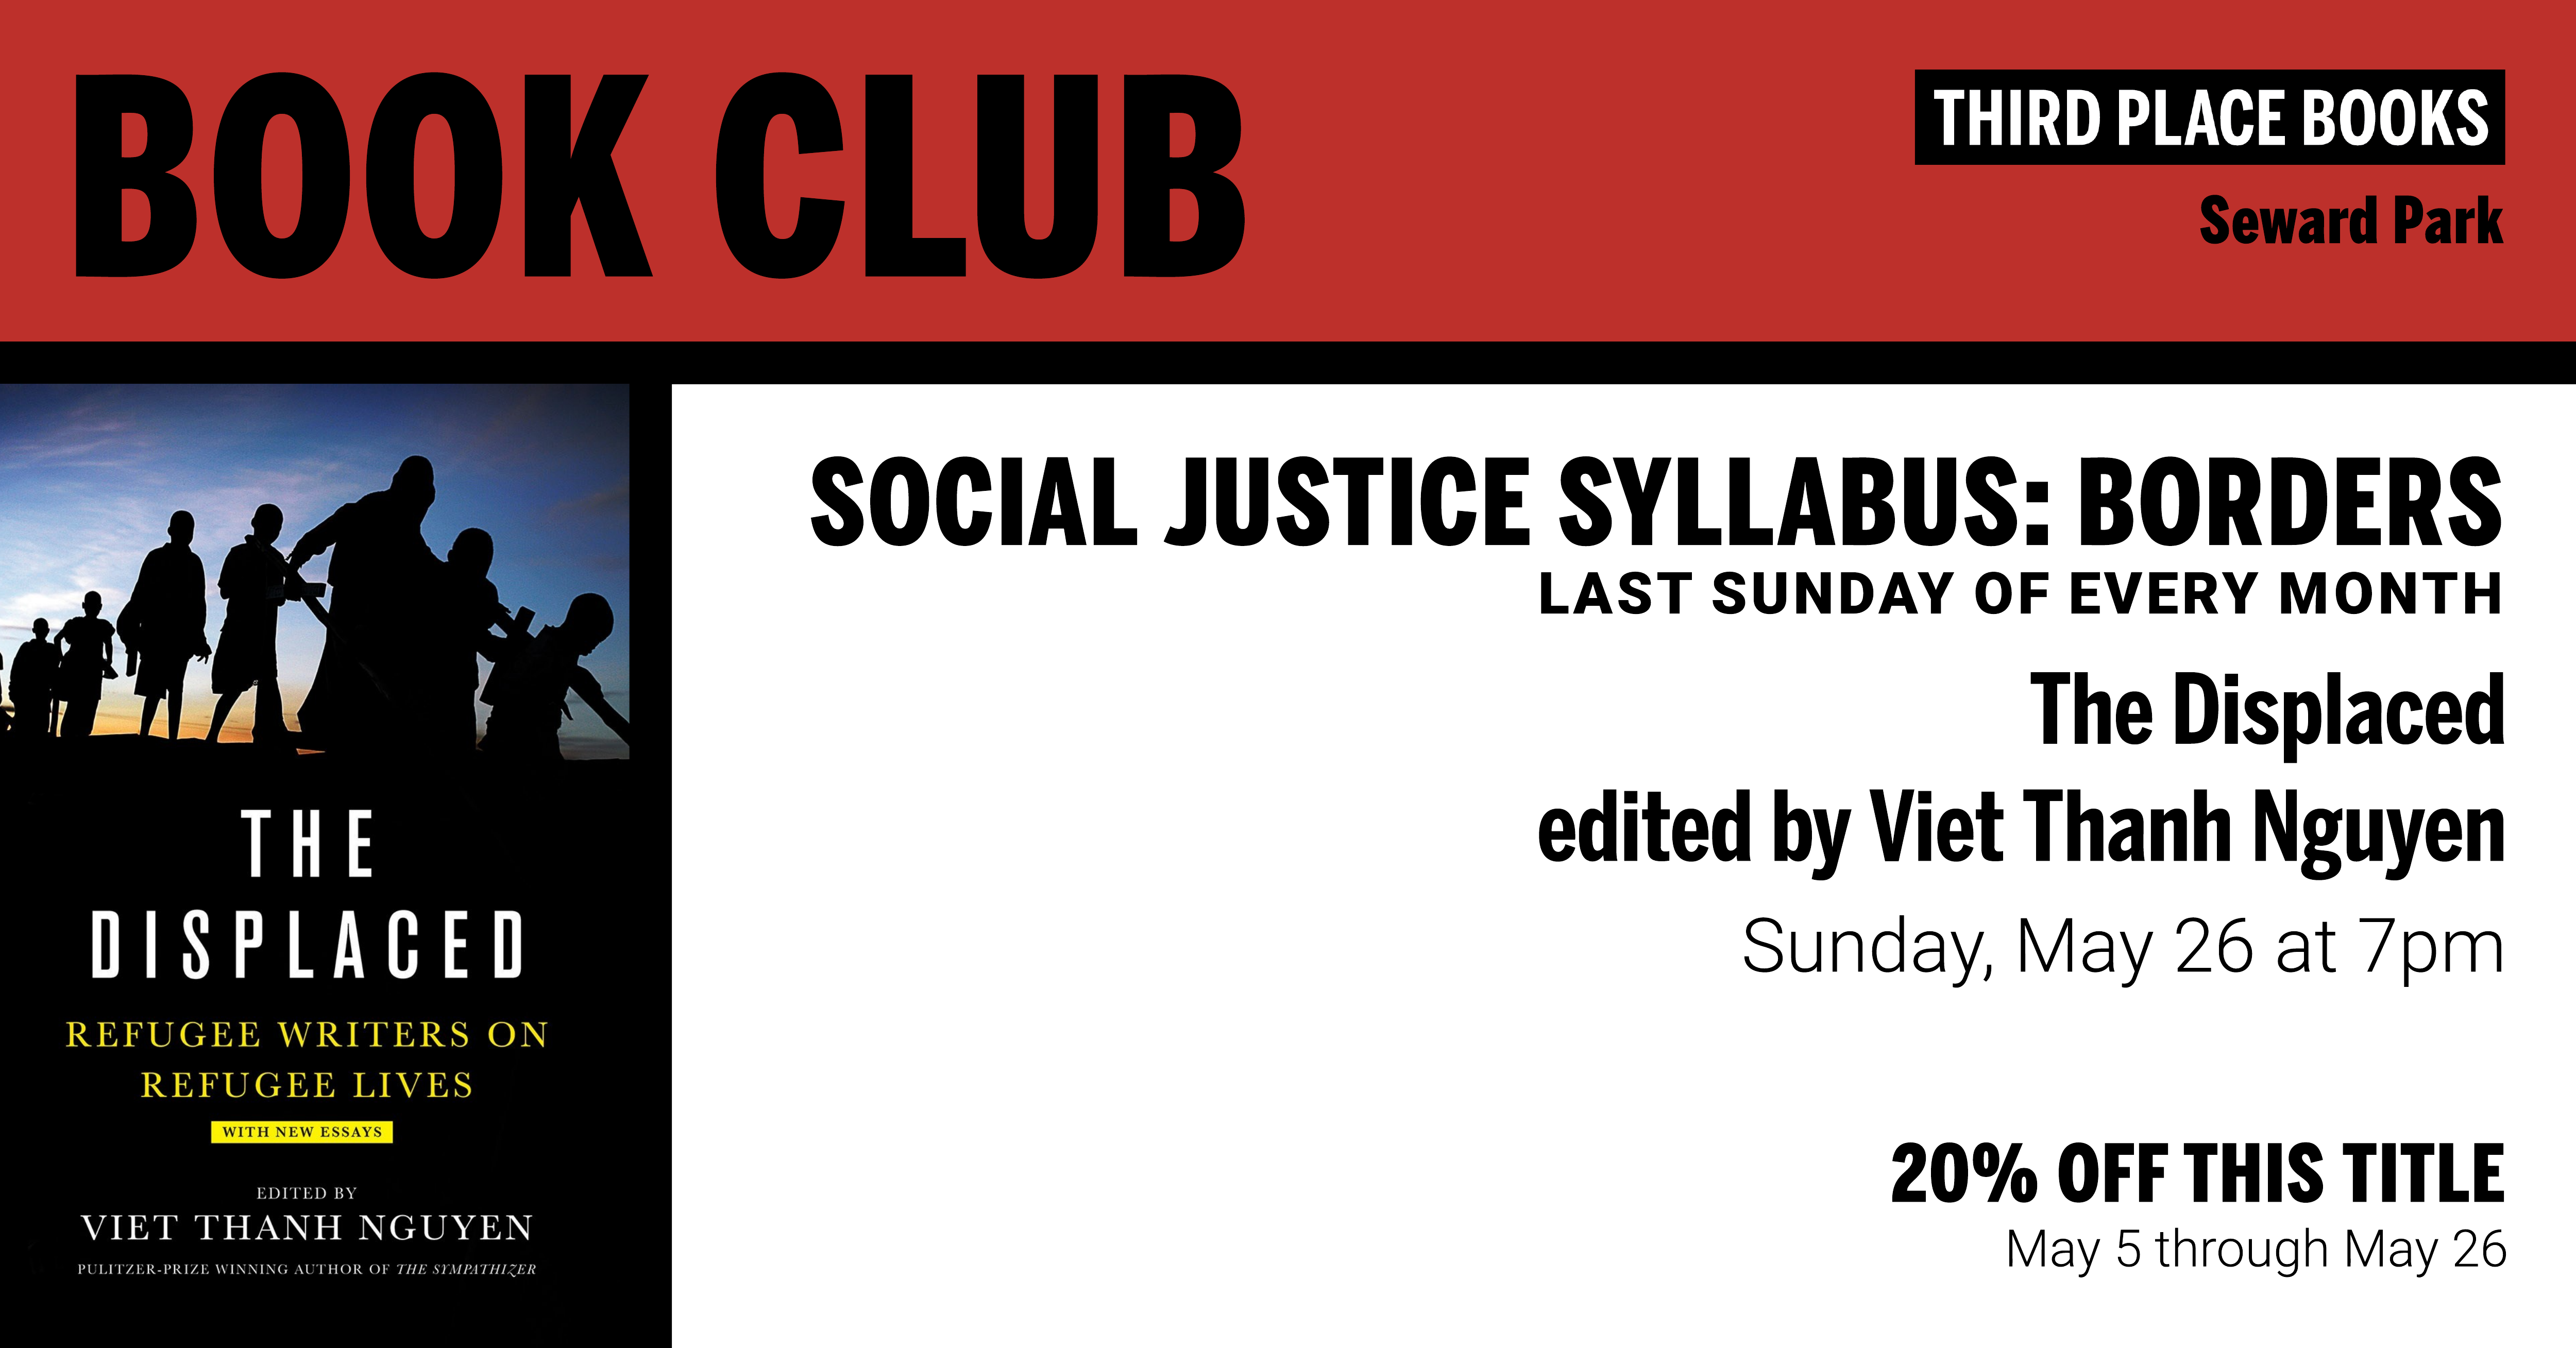 Social Justice Syllabus: Borders discussing The Displaced edited by Viet Thanh Nguyen on Sunday, May 26 at 7pm